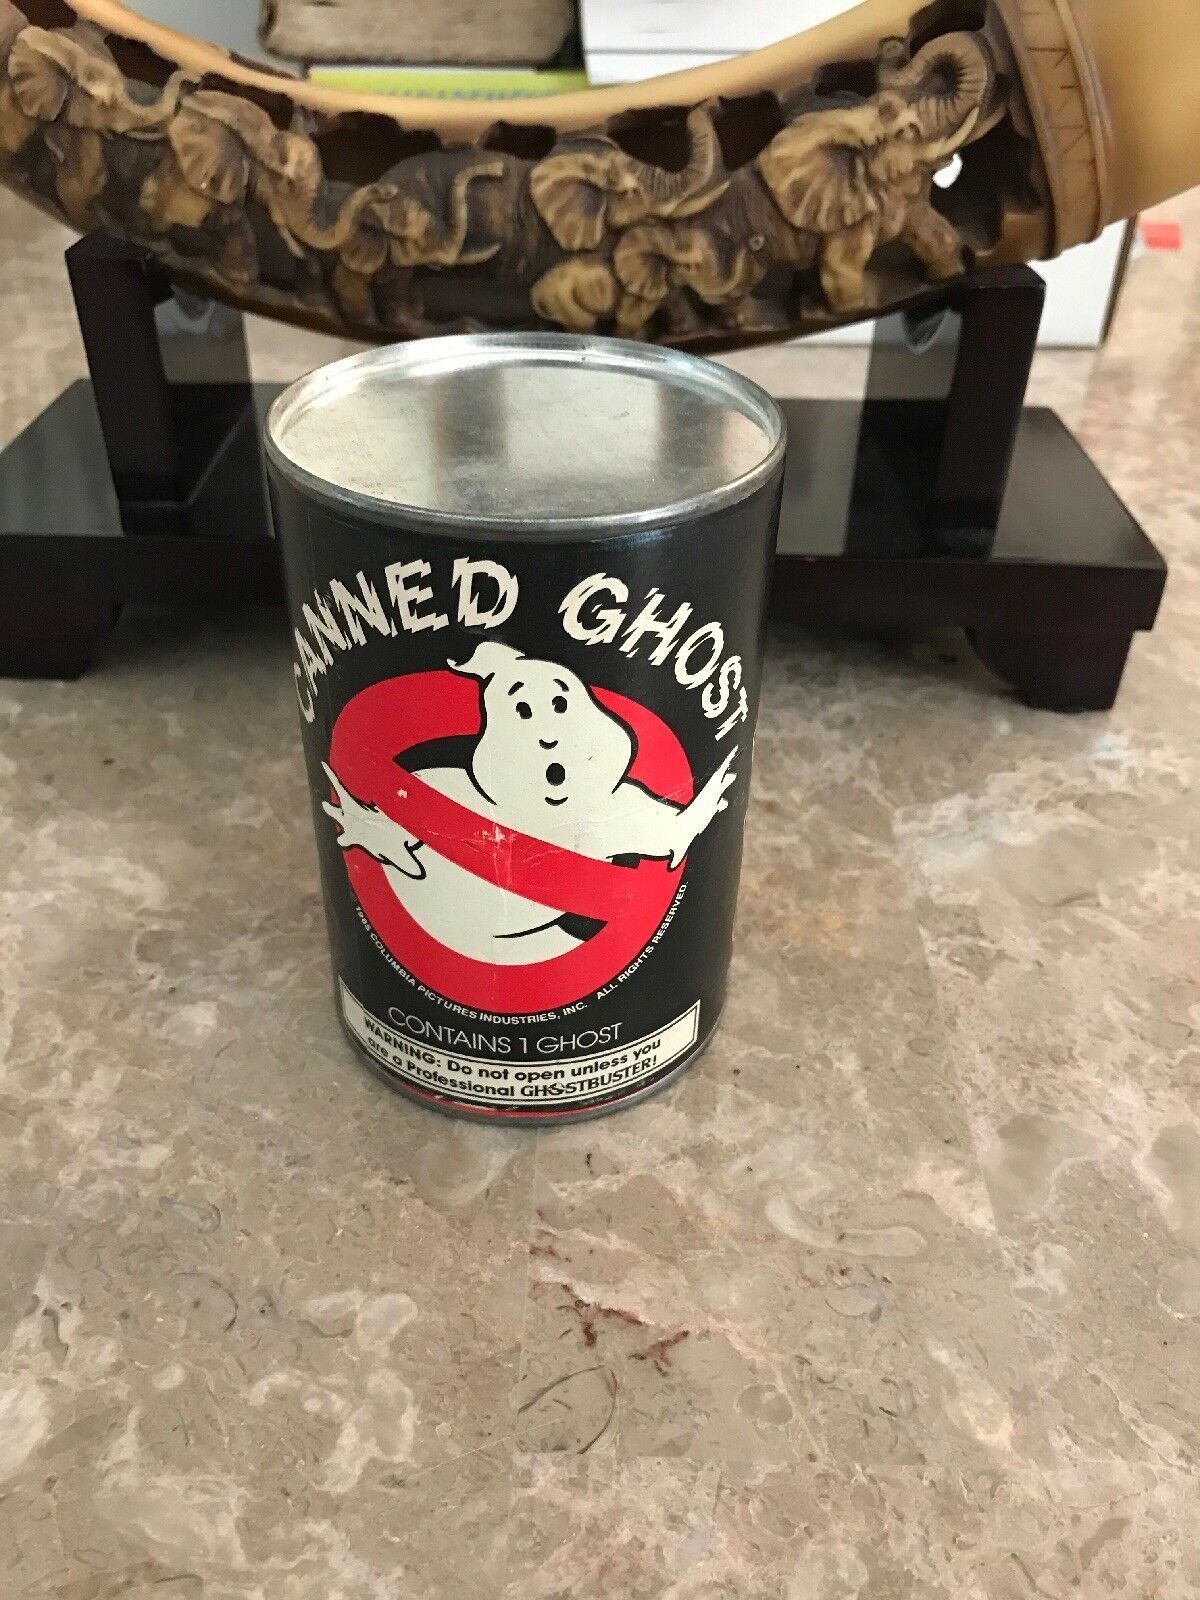 Ghostbusters Canned Ghost 1985 Glows In The Dark Sealed